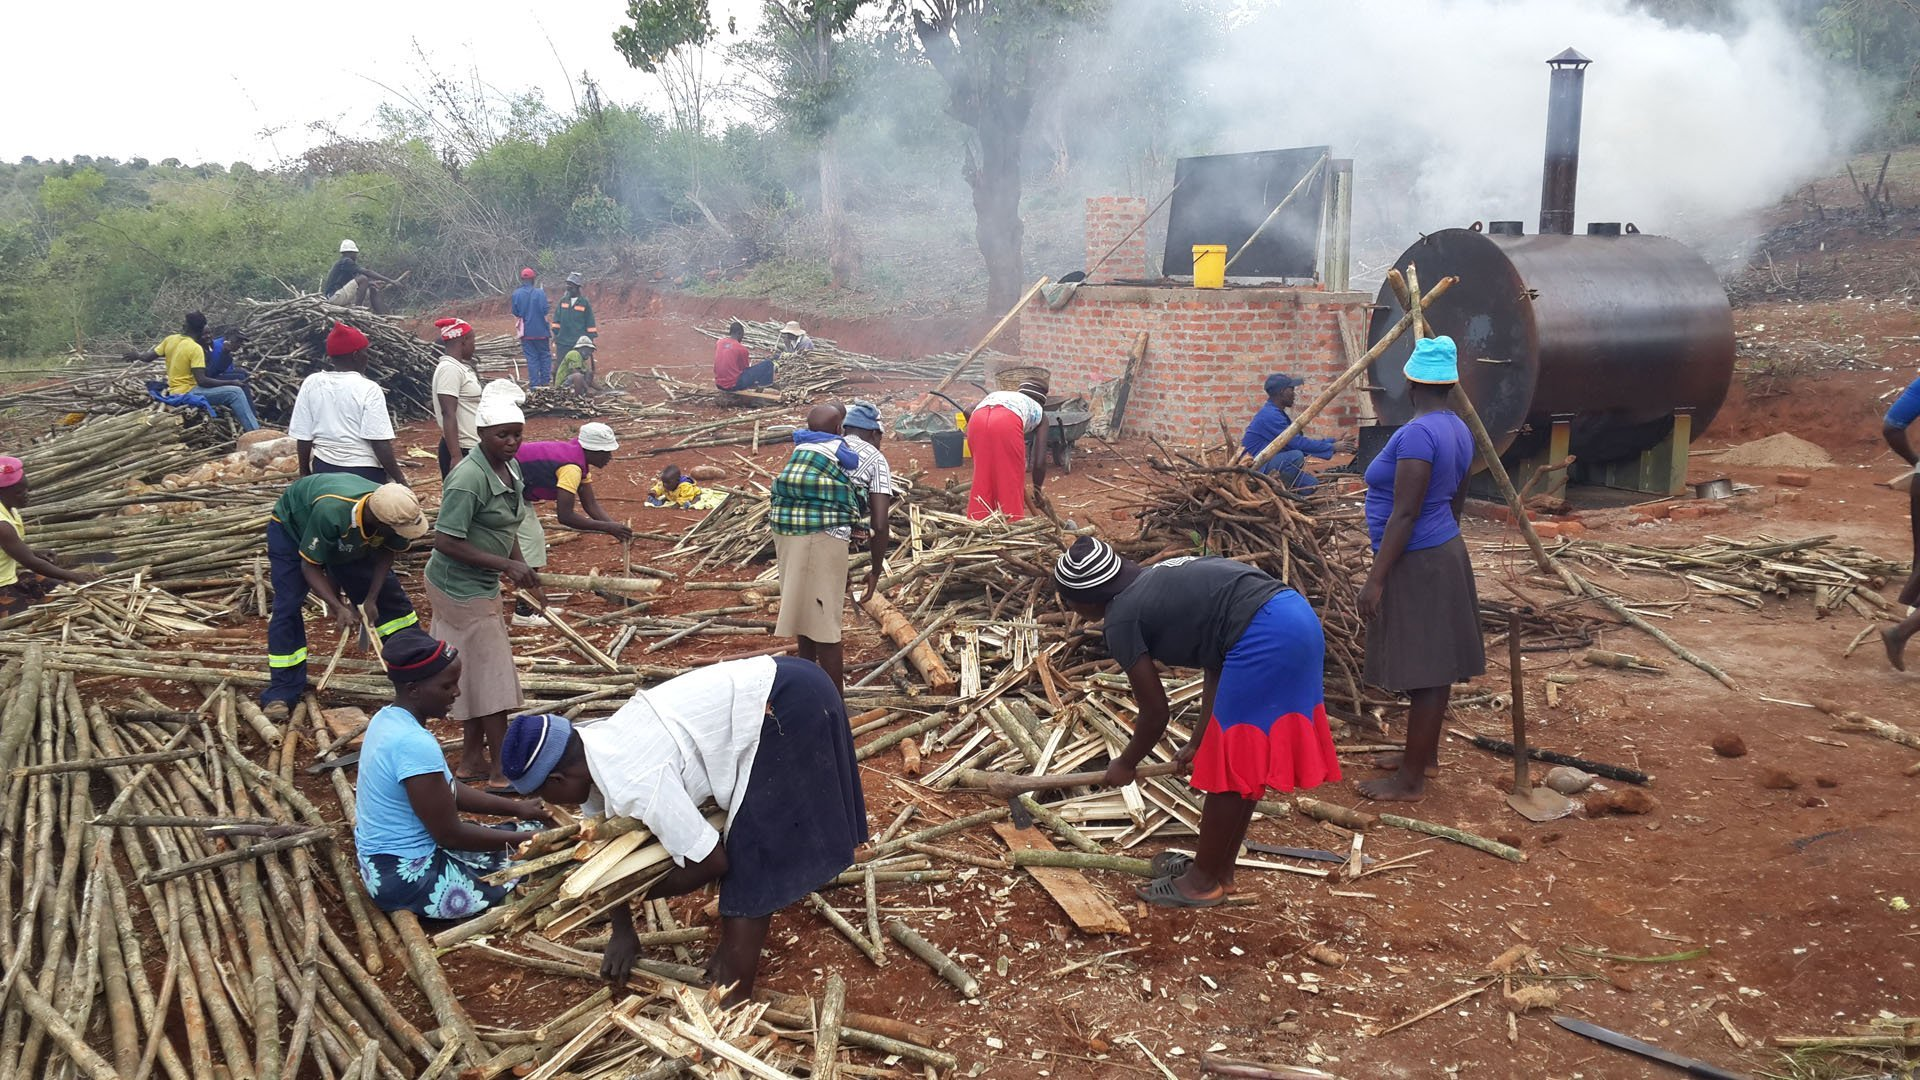 Local farmer group making charcoal from bamboo in Sagambe, Honde Valley